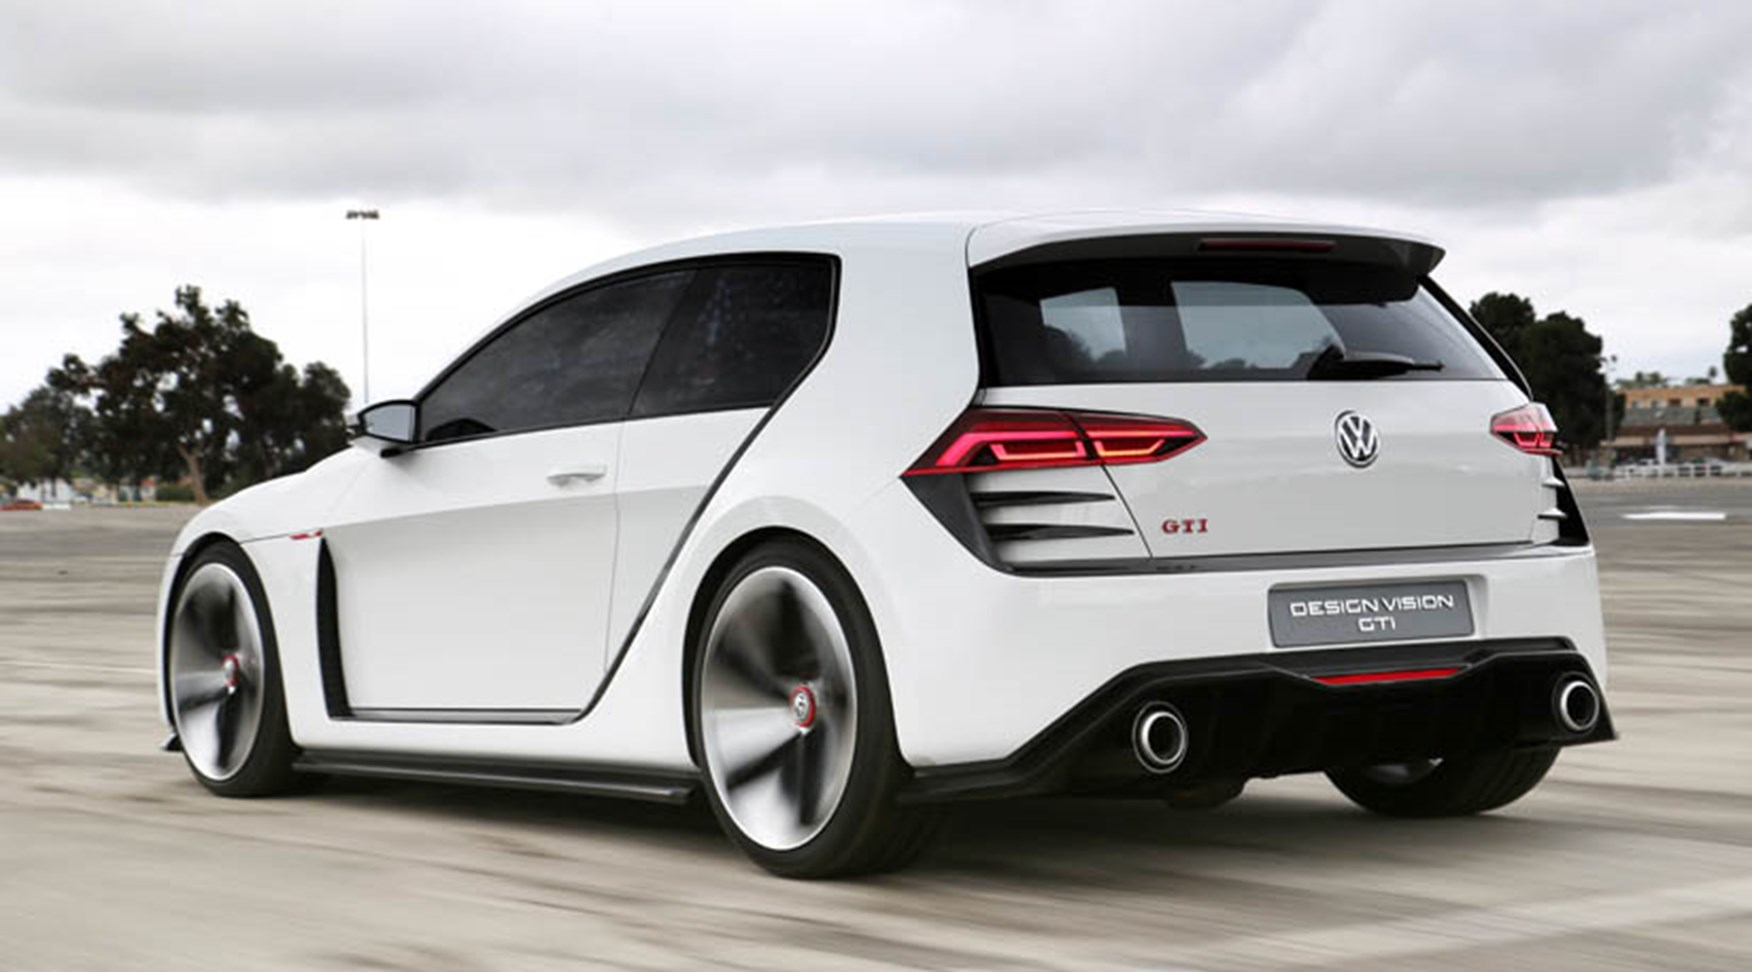 Vw Design Vision Golf Gti 2013 Car Review By Car Magazine